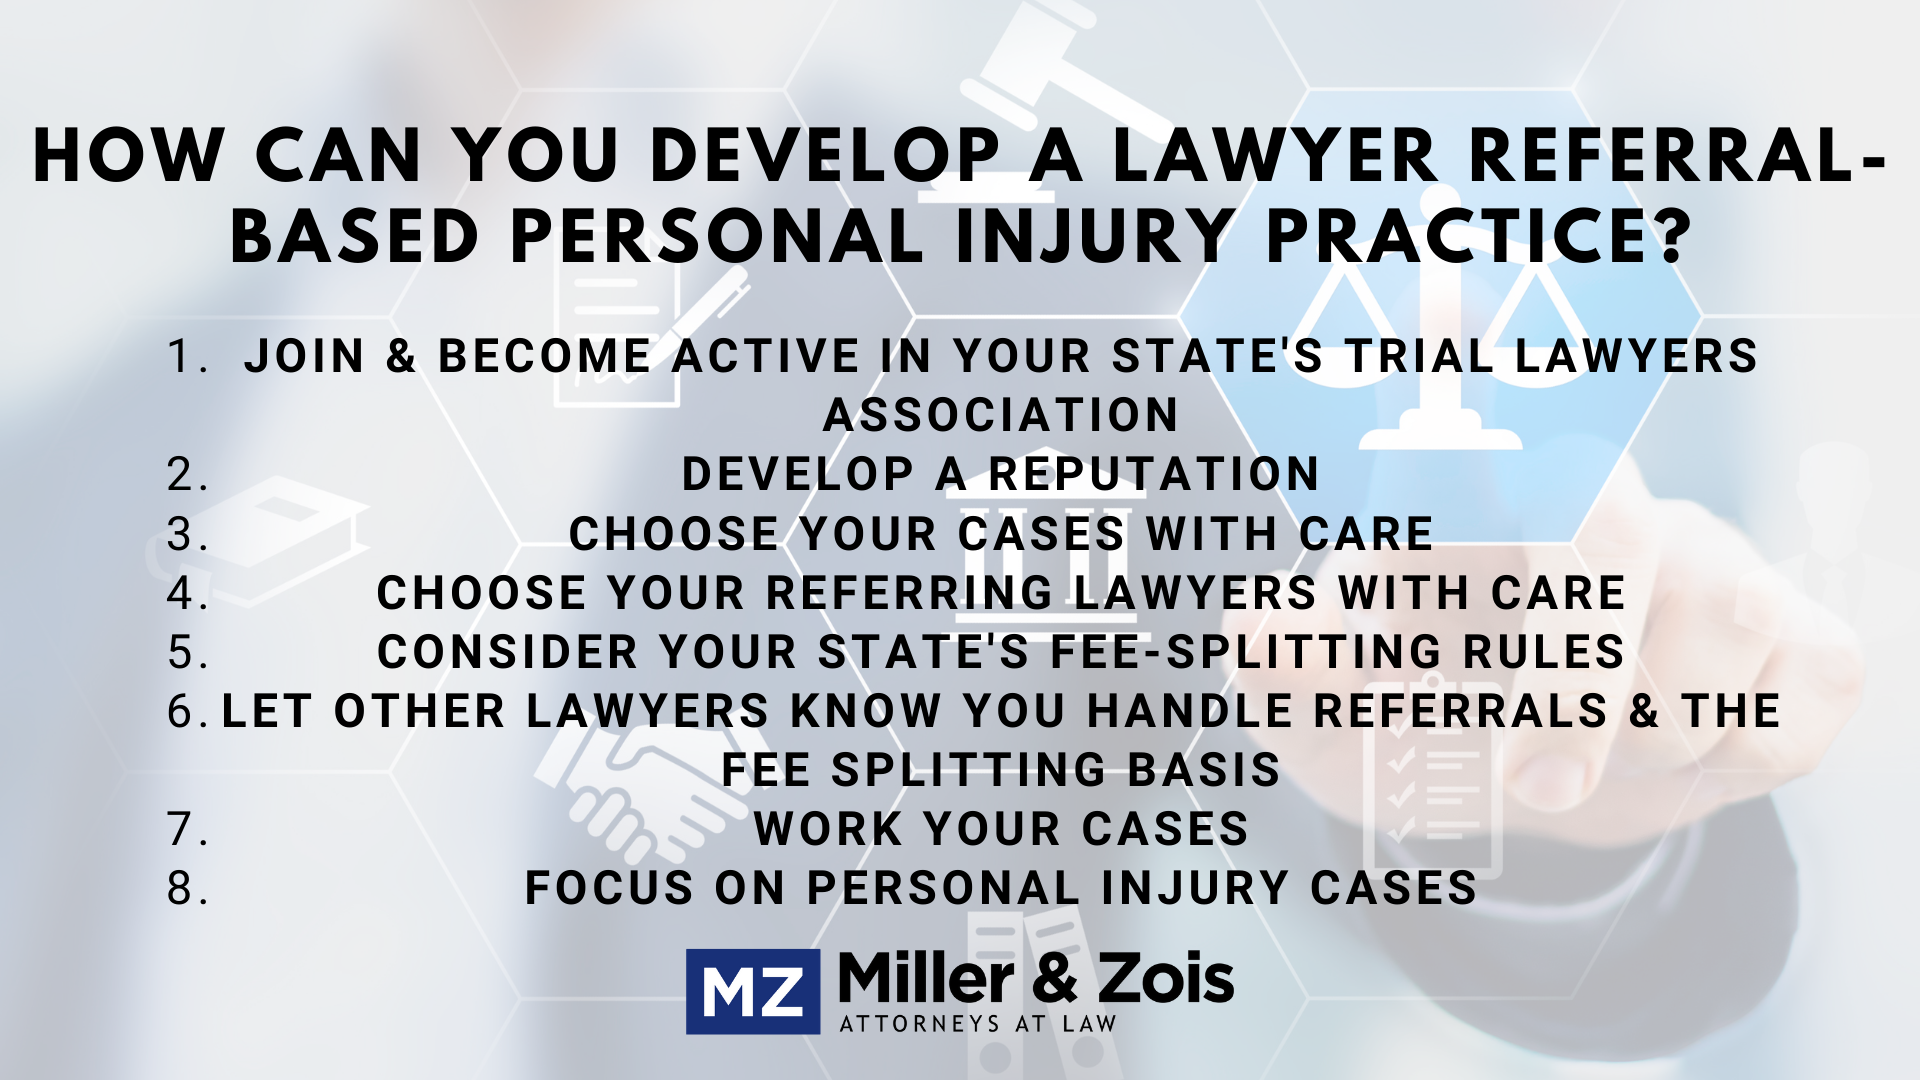 Lawyer personal injury referrals